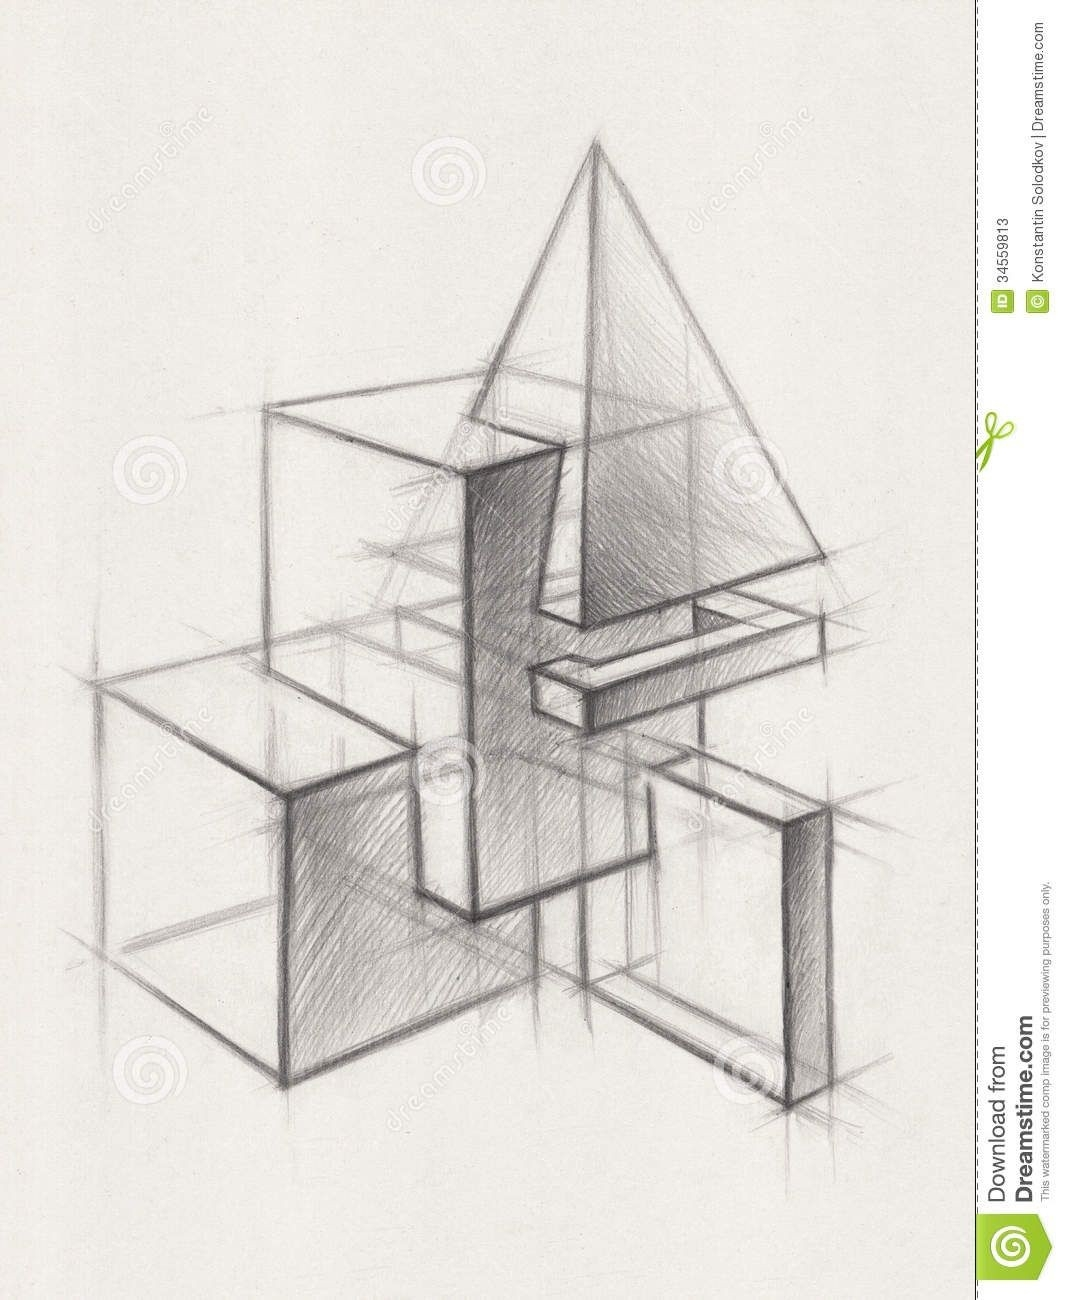 Geometric Form Drawing - Google Search | Geometria | Pinterest throughout Geometric Form Drawing 23756